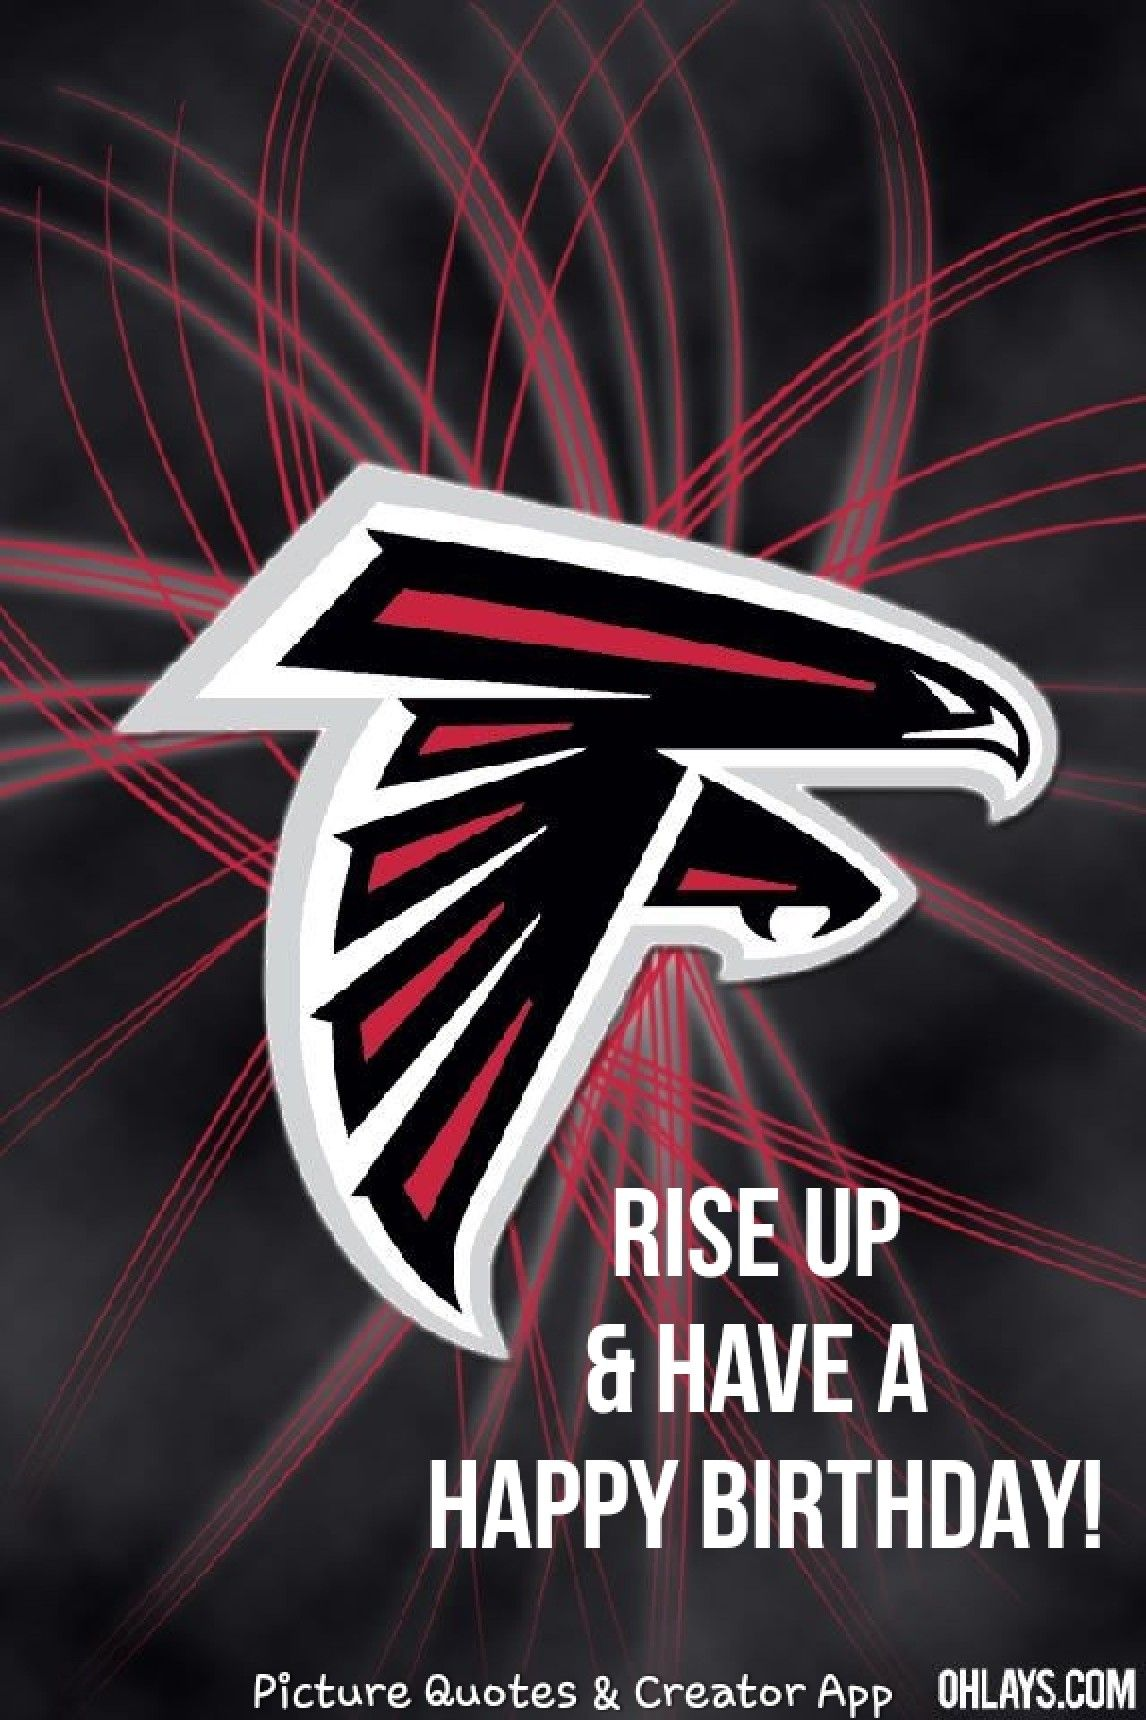 Pin By Roberto Labra On Football Team Cakes Bd Wishes Atlanta Falcons Wallpaper Atlanta Falcons Logo Atlanta Falcons